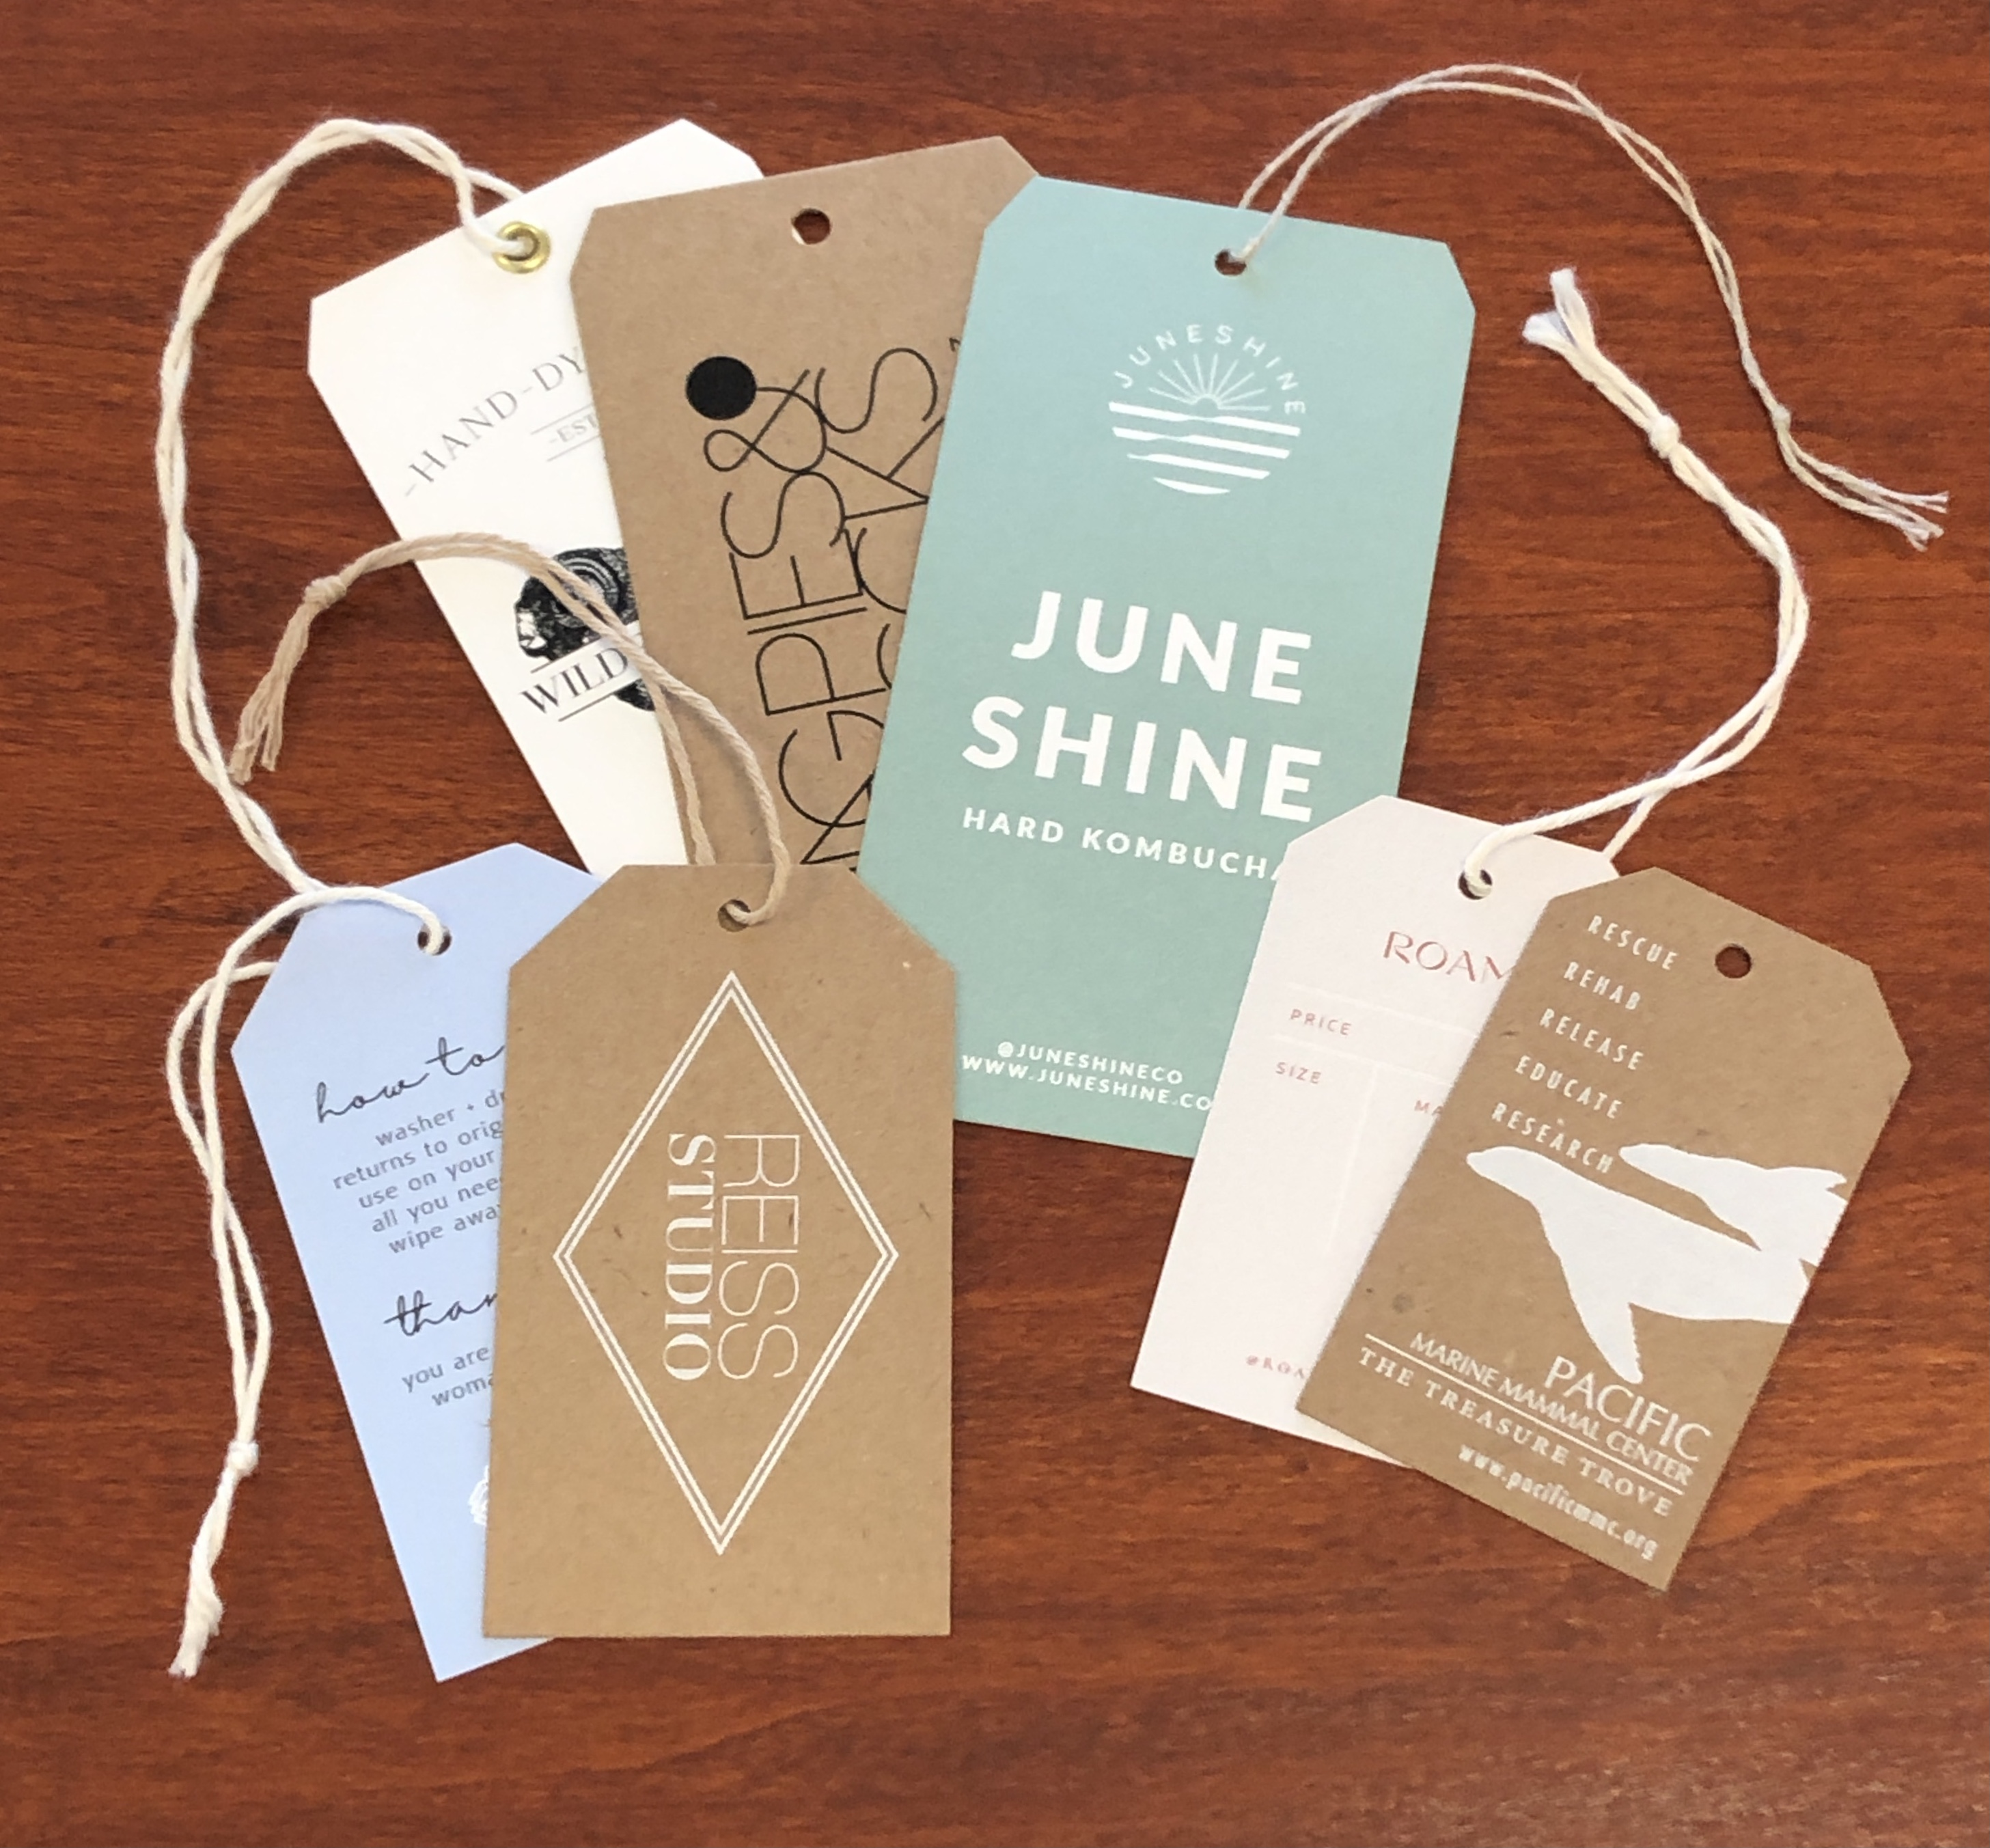 Corner clipped hang tags